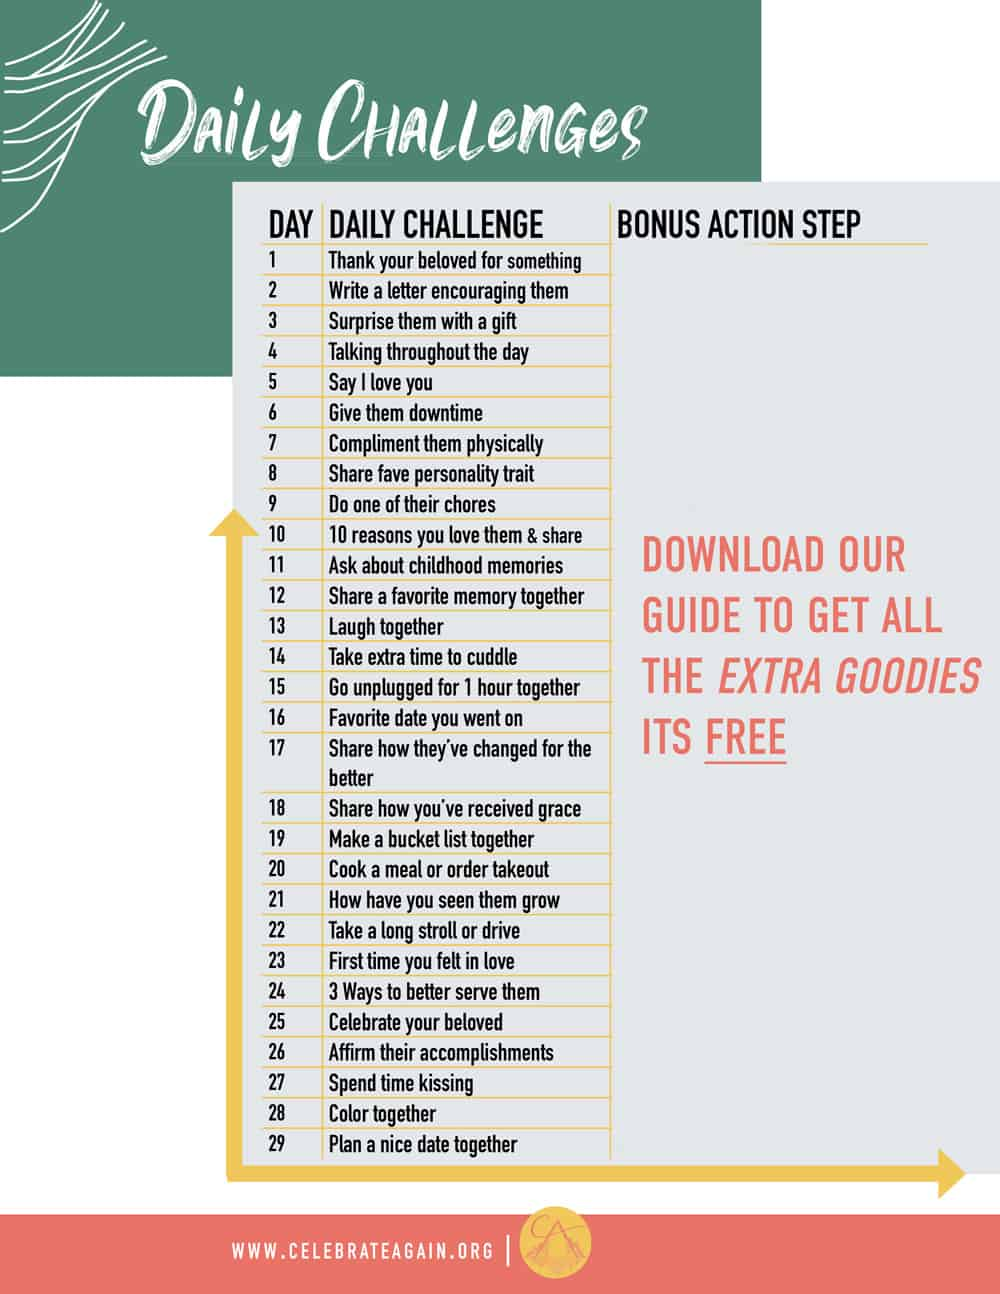 30 day relationship challenge with ideas and directions to download guide for a printable version